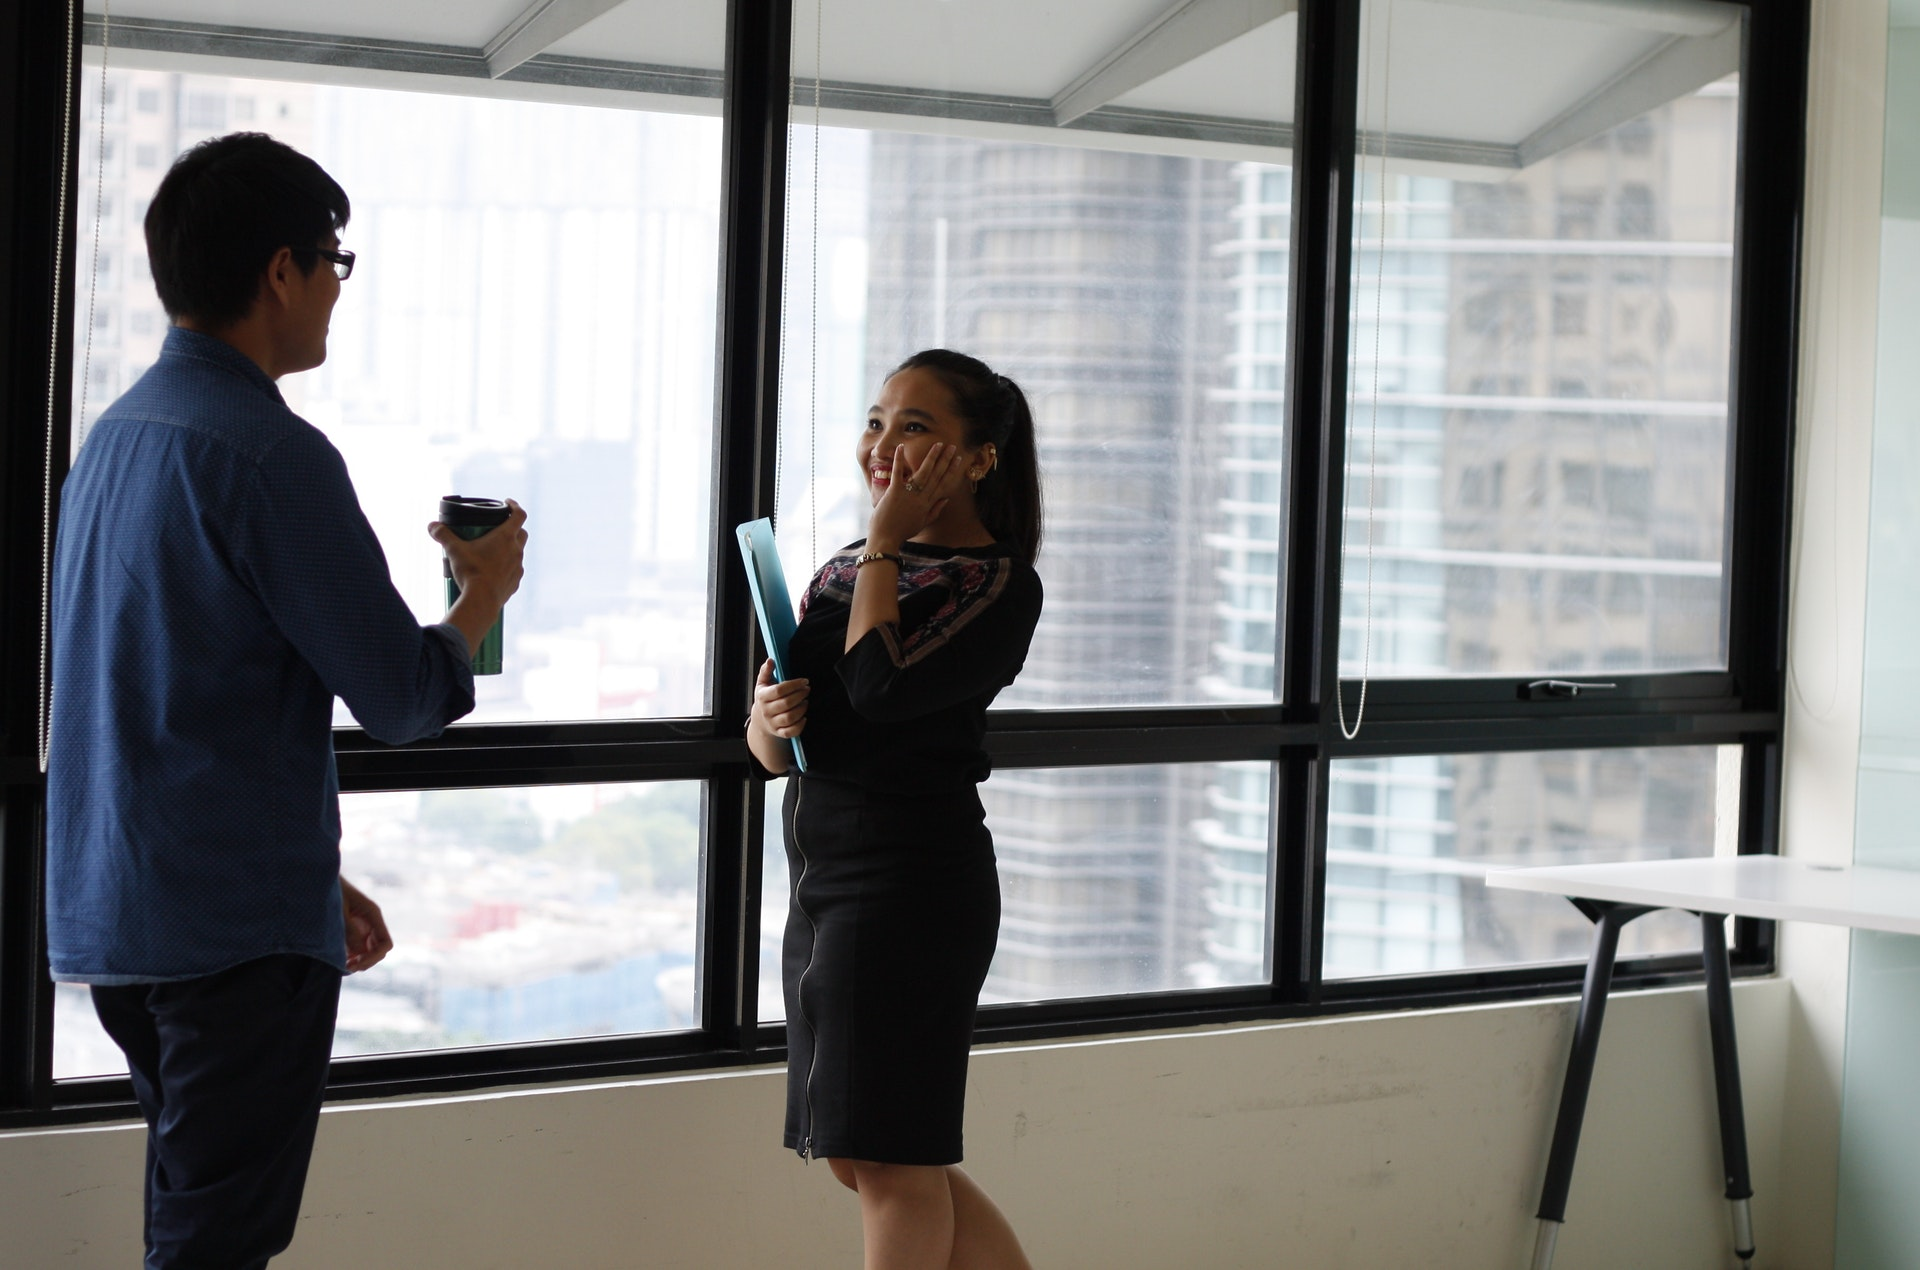 Millennials' guide to making a good impression in the workplace